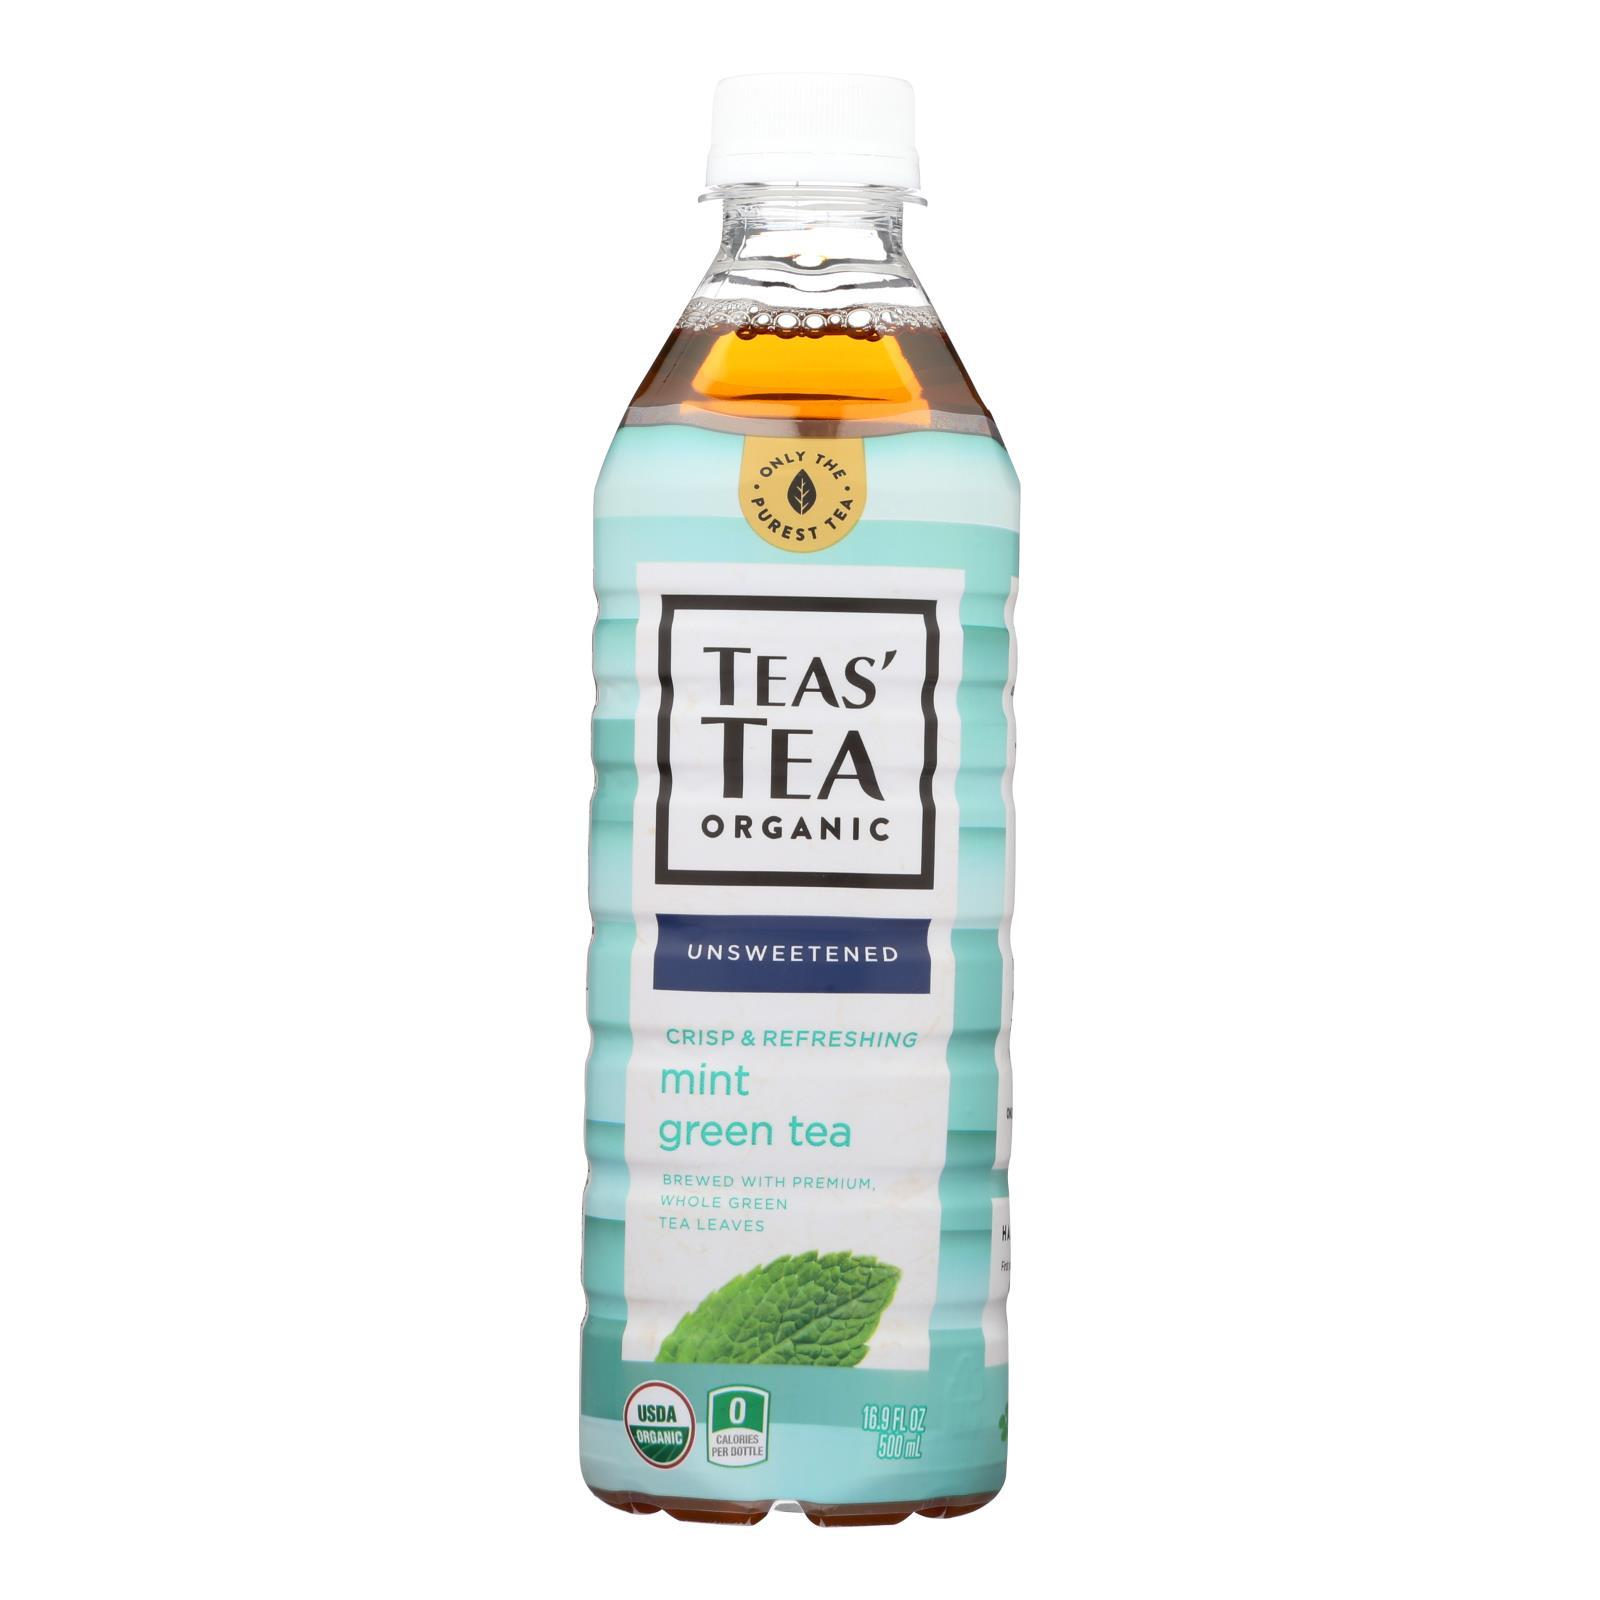 Itoen Tea - Organic - Green - Mint - Bottle - Case Of 12 - 16.9 Fl Oz - BeeGreen